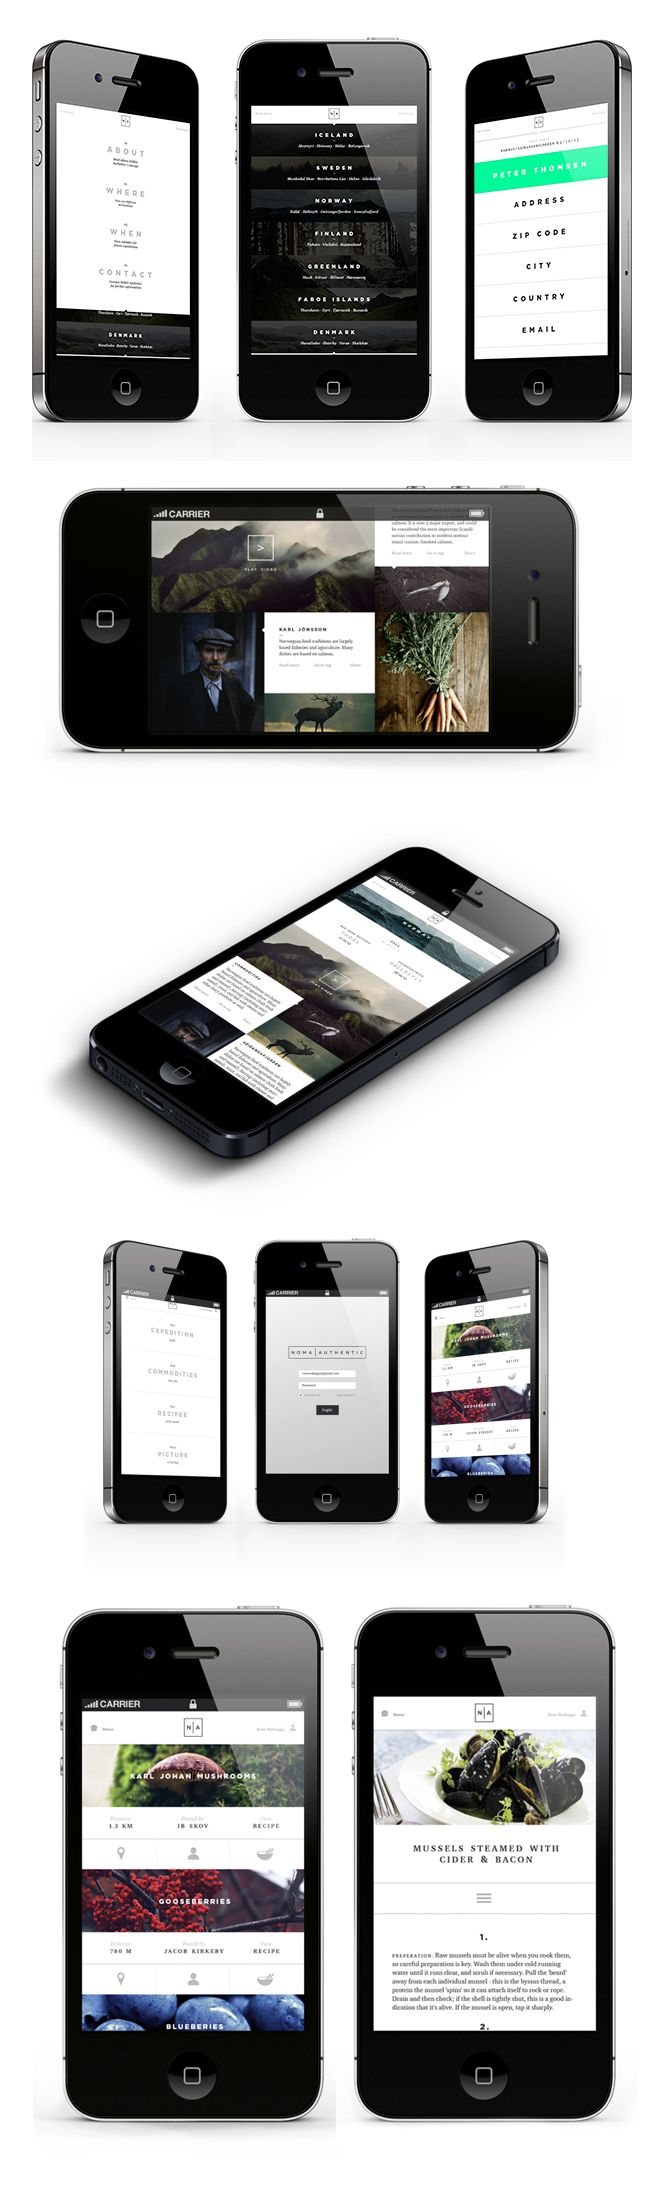 APP design. UI mobile